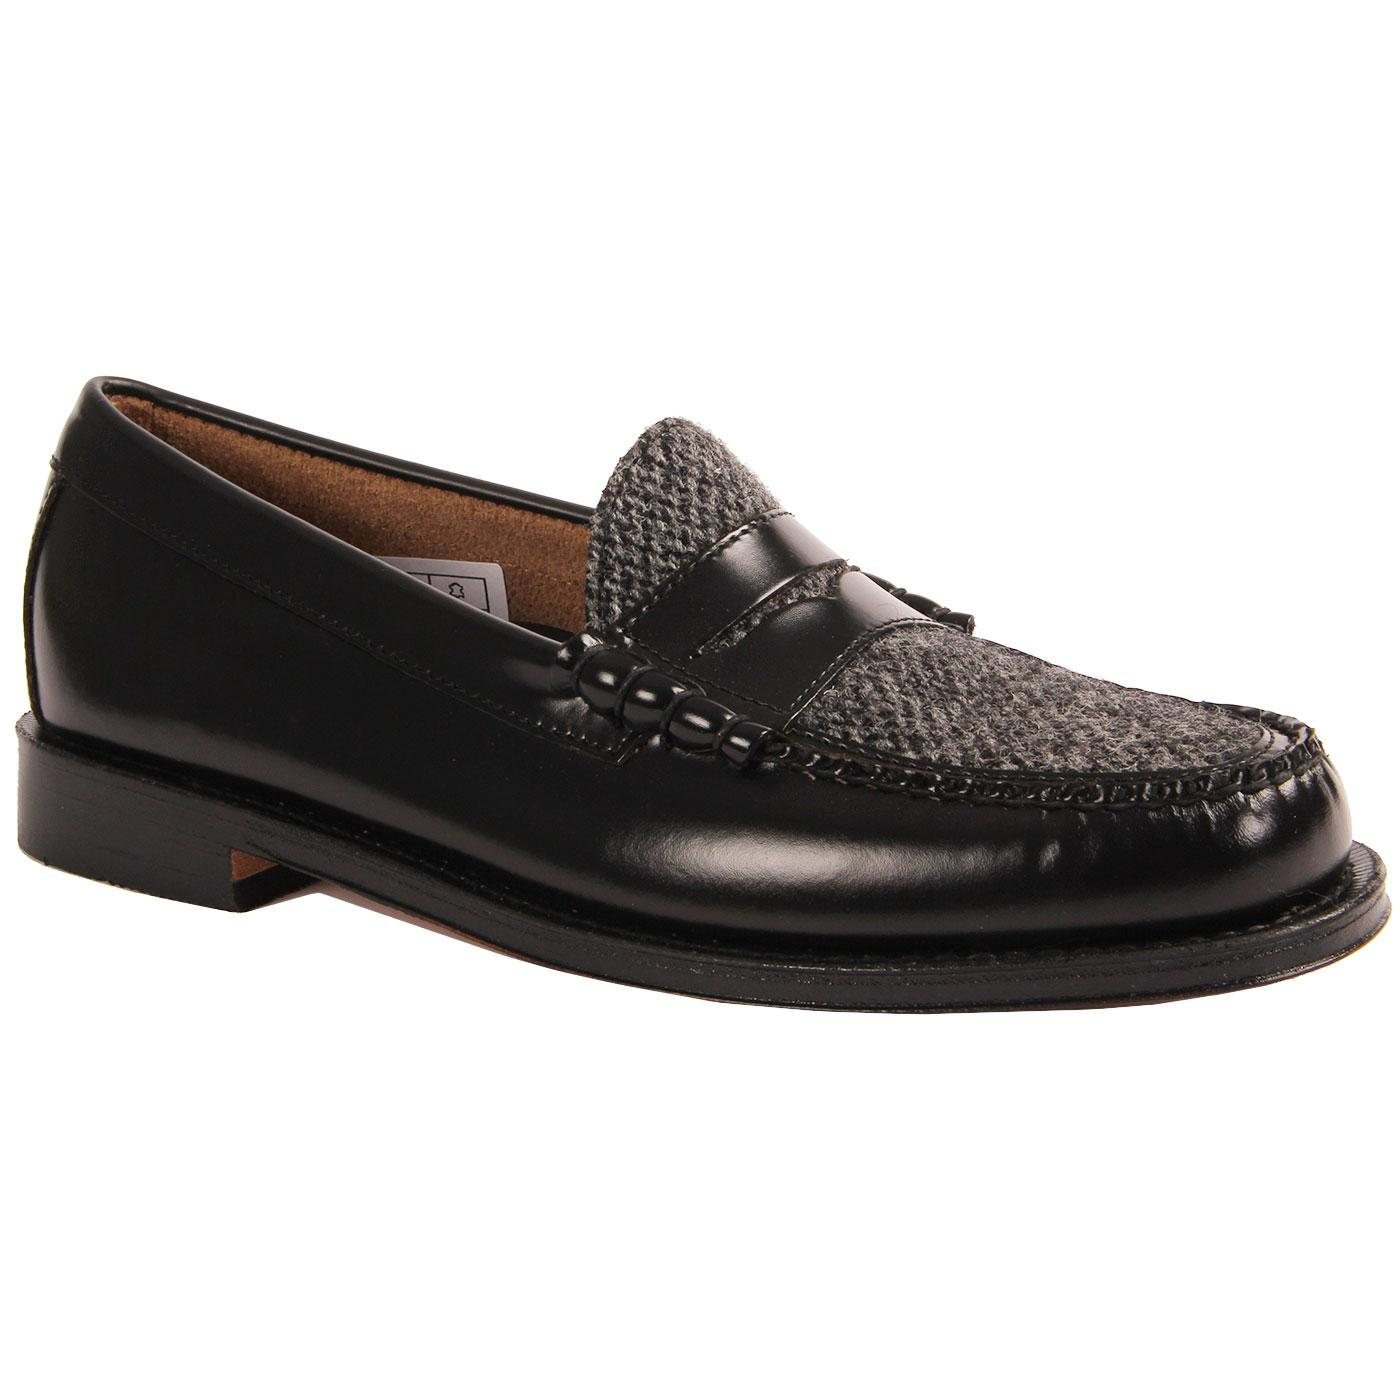 Larson BASS WEEJUNS Mod Tweed Penny Loafers Black